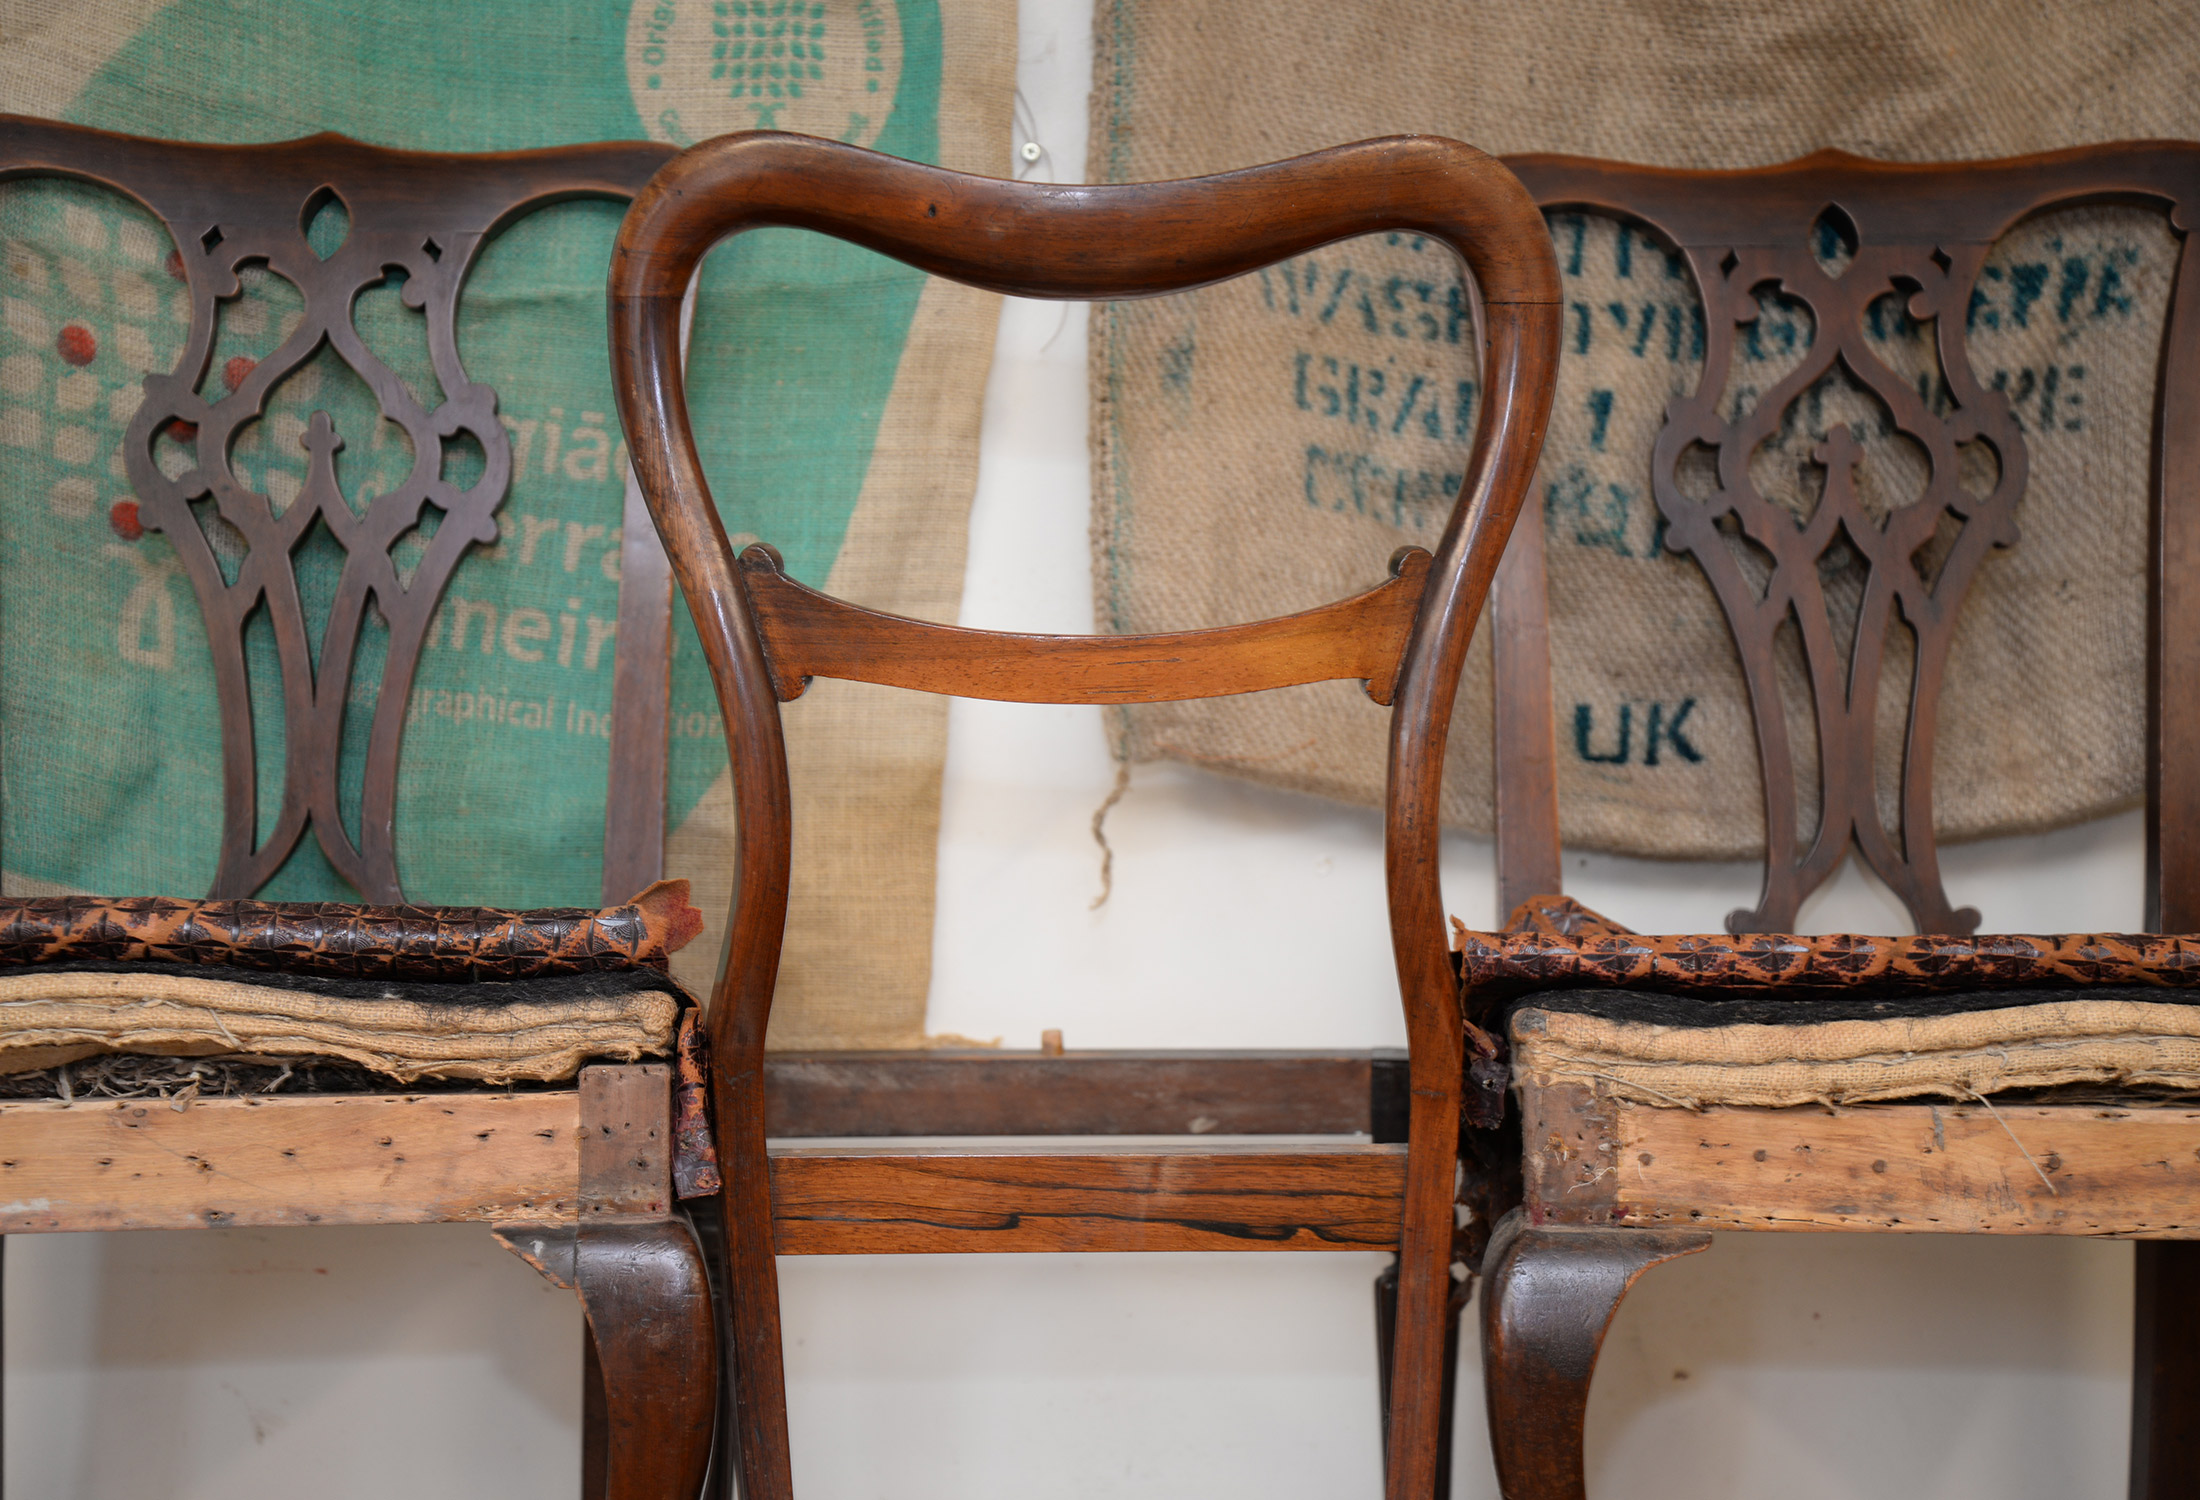 Furniture Reupholstery Near Me Uk Furniture Repairs And Traditional Upholstery In Suffolk